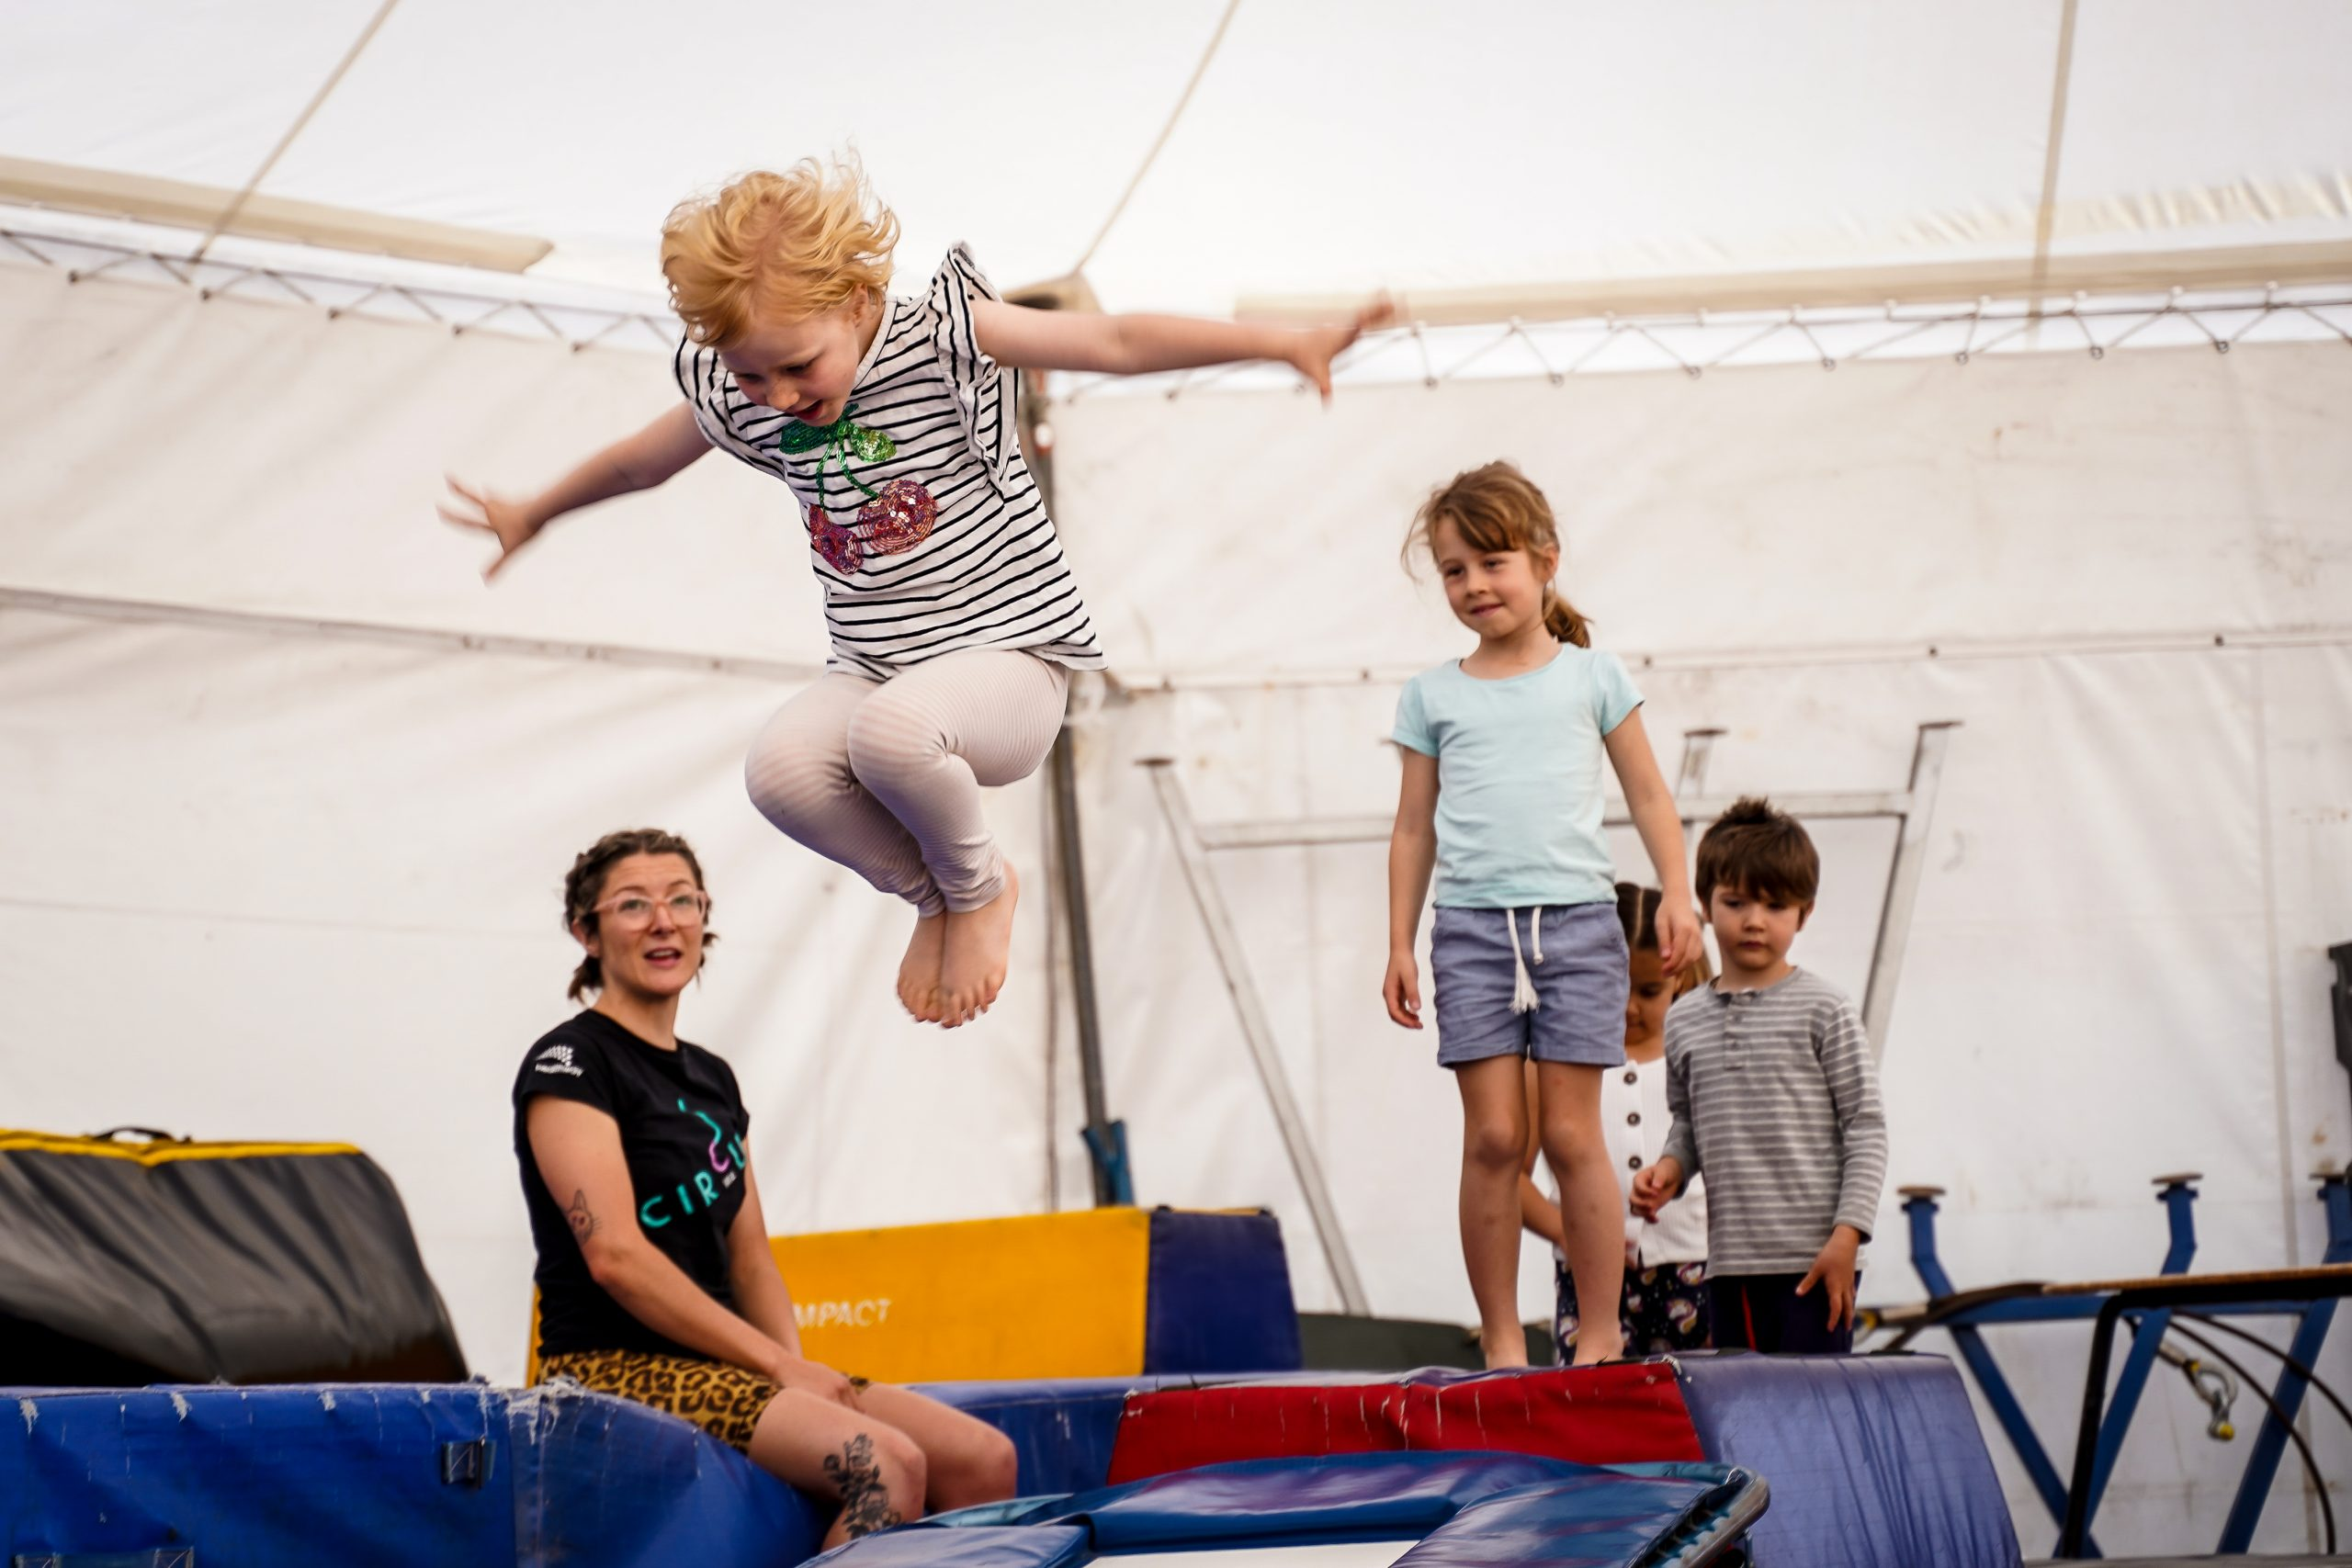 a child jumps on the trampoline while a trainer watches